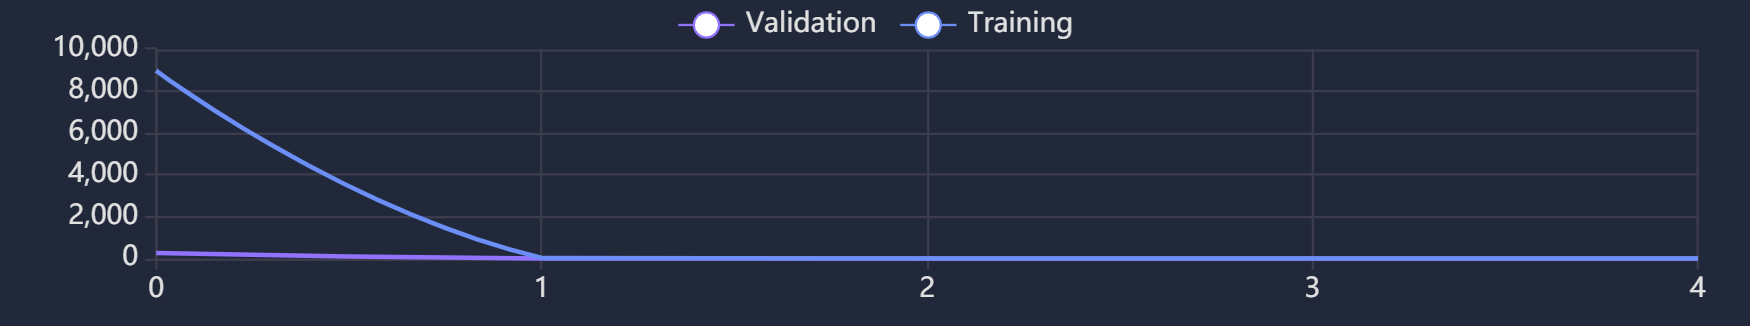 Figure 5: Loss during training.